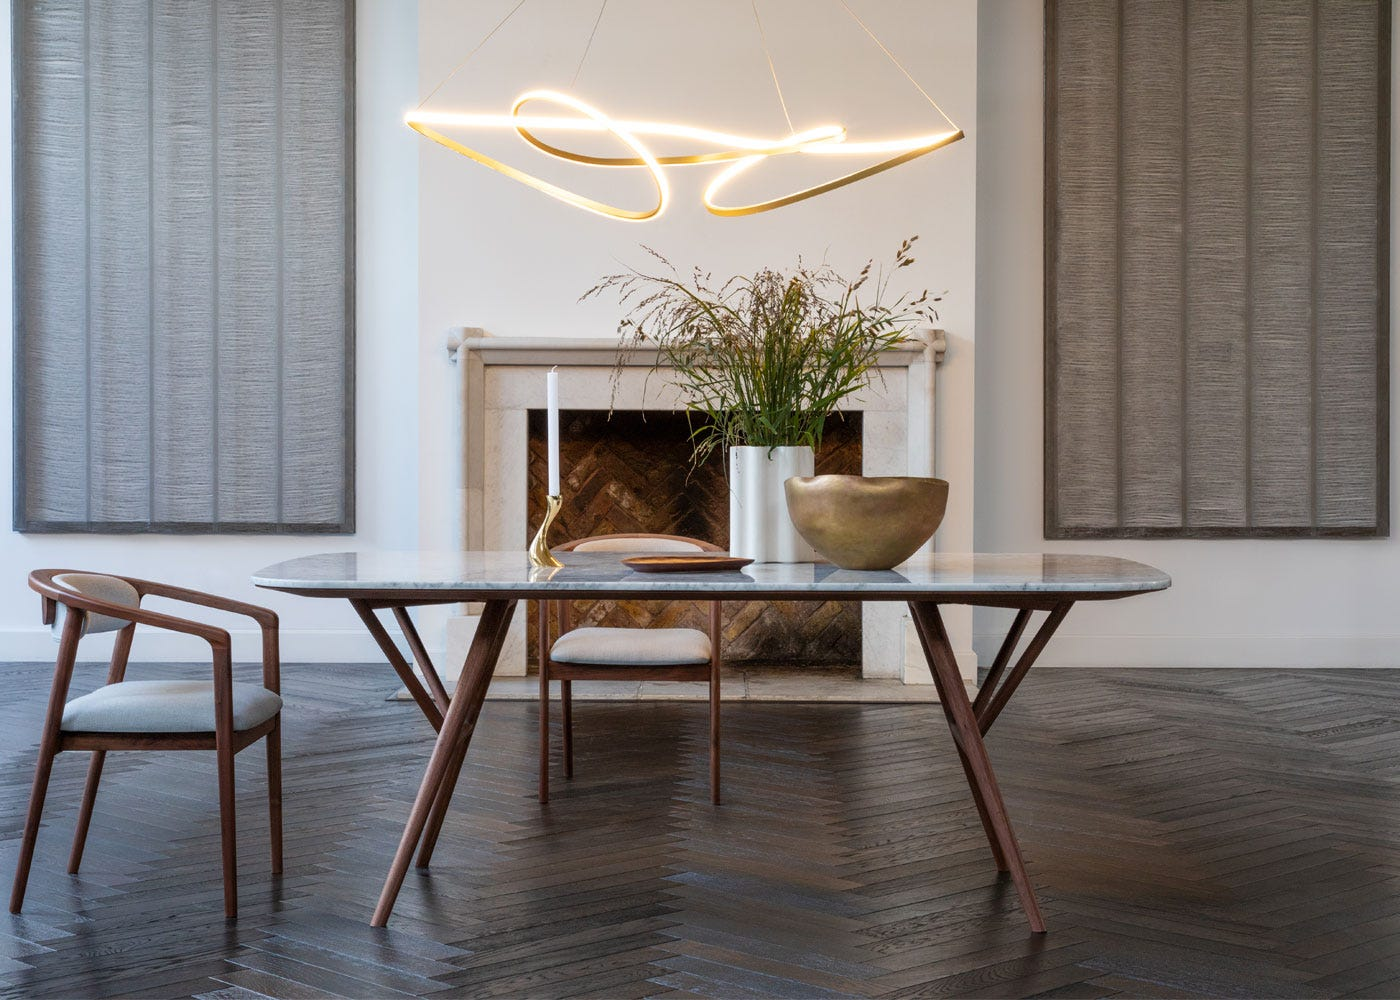 As shown: Anais dining table and chair, Ribbon XL pendant light.